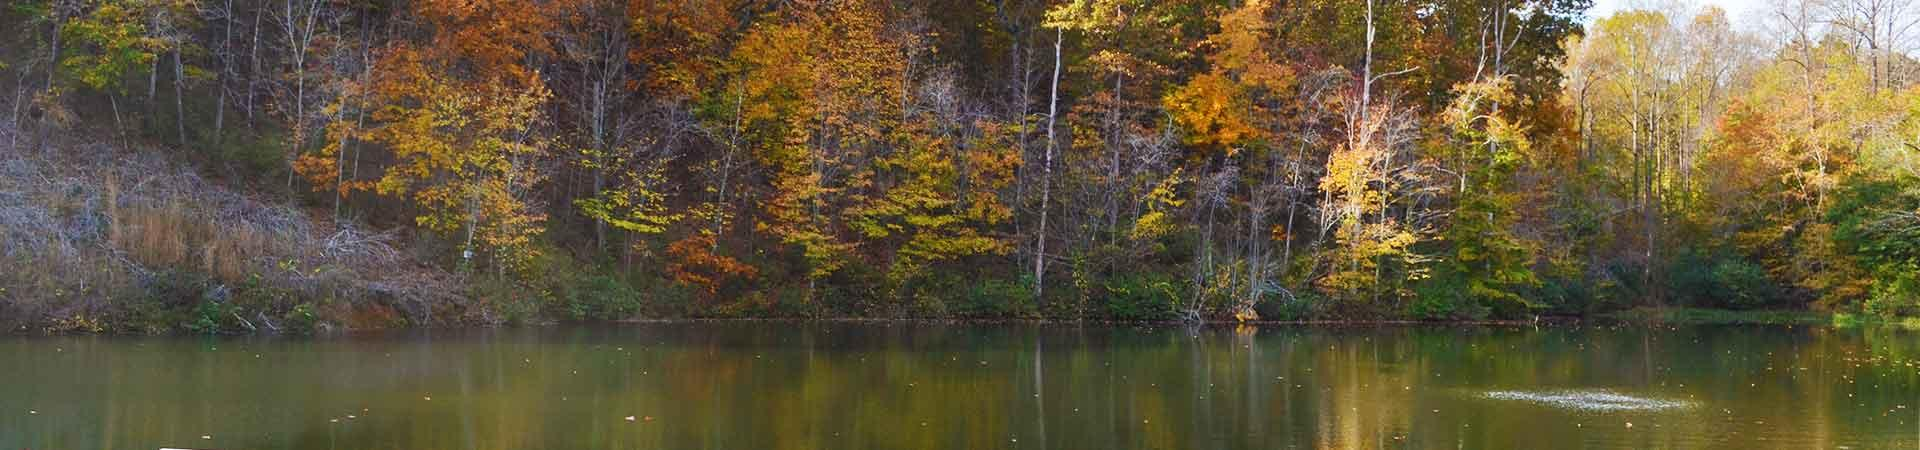 lake and trees at Buck Shoals Wildlife Management Area